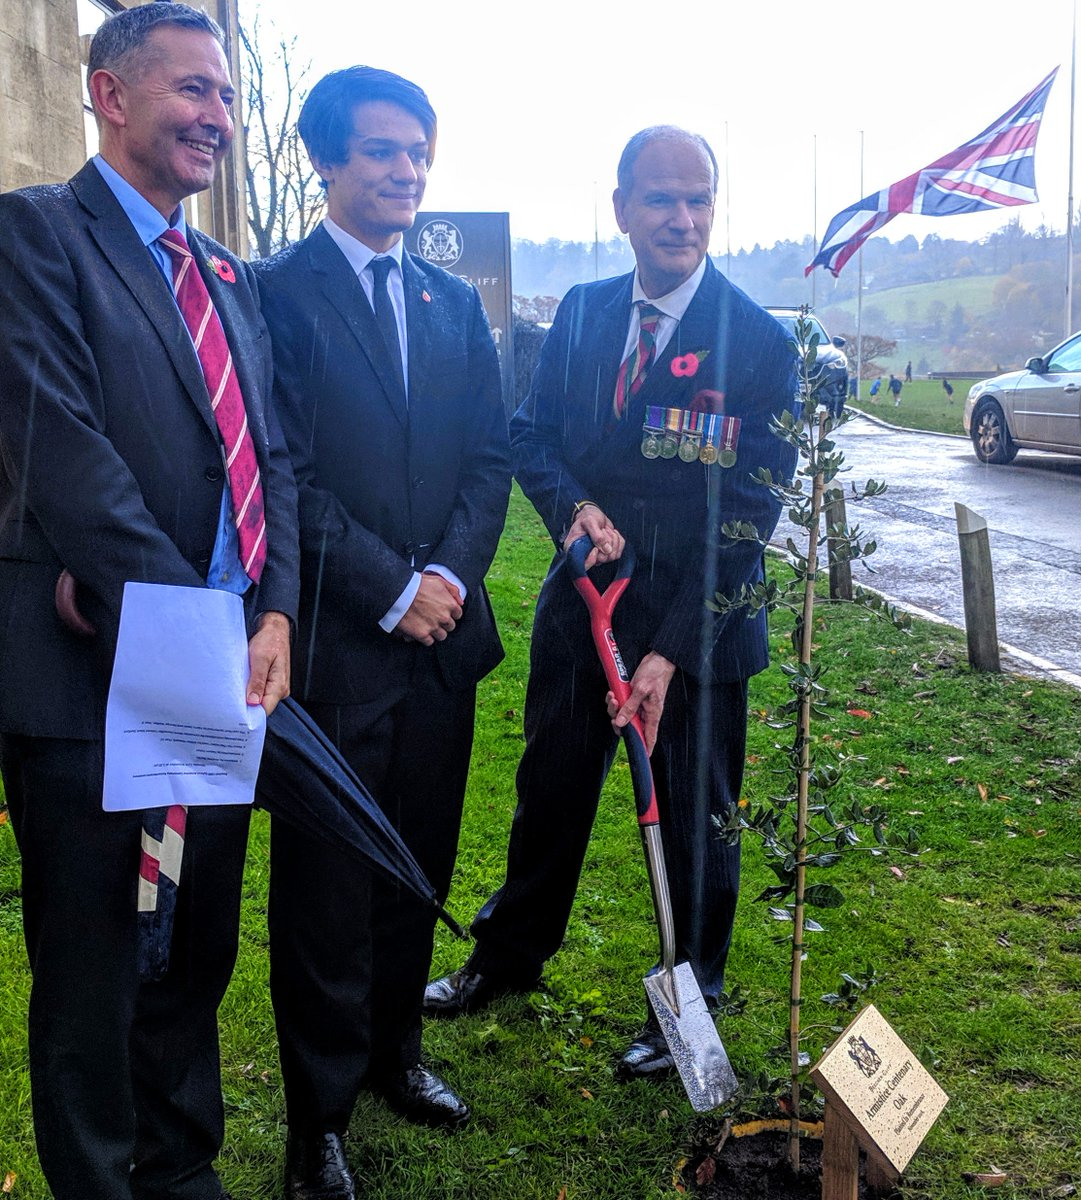 Andrew Davies, sixth form student Arthur Howard and Councillor Mark Shelford plant an oak tree at Beechen Cliff to mark the Armistice Centenary. Rupert Tobin, Head of History, provided some reflections on lessons learnt from war and rugby training was paused. #ArmisticeDay100